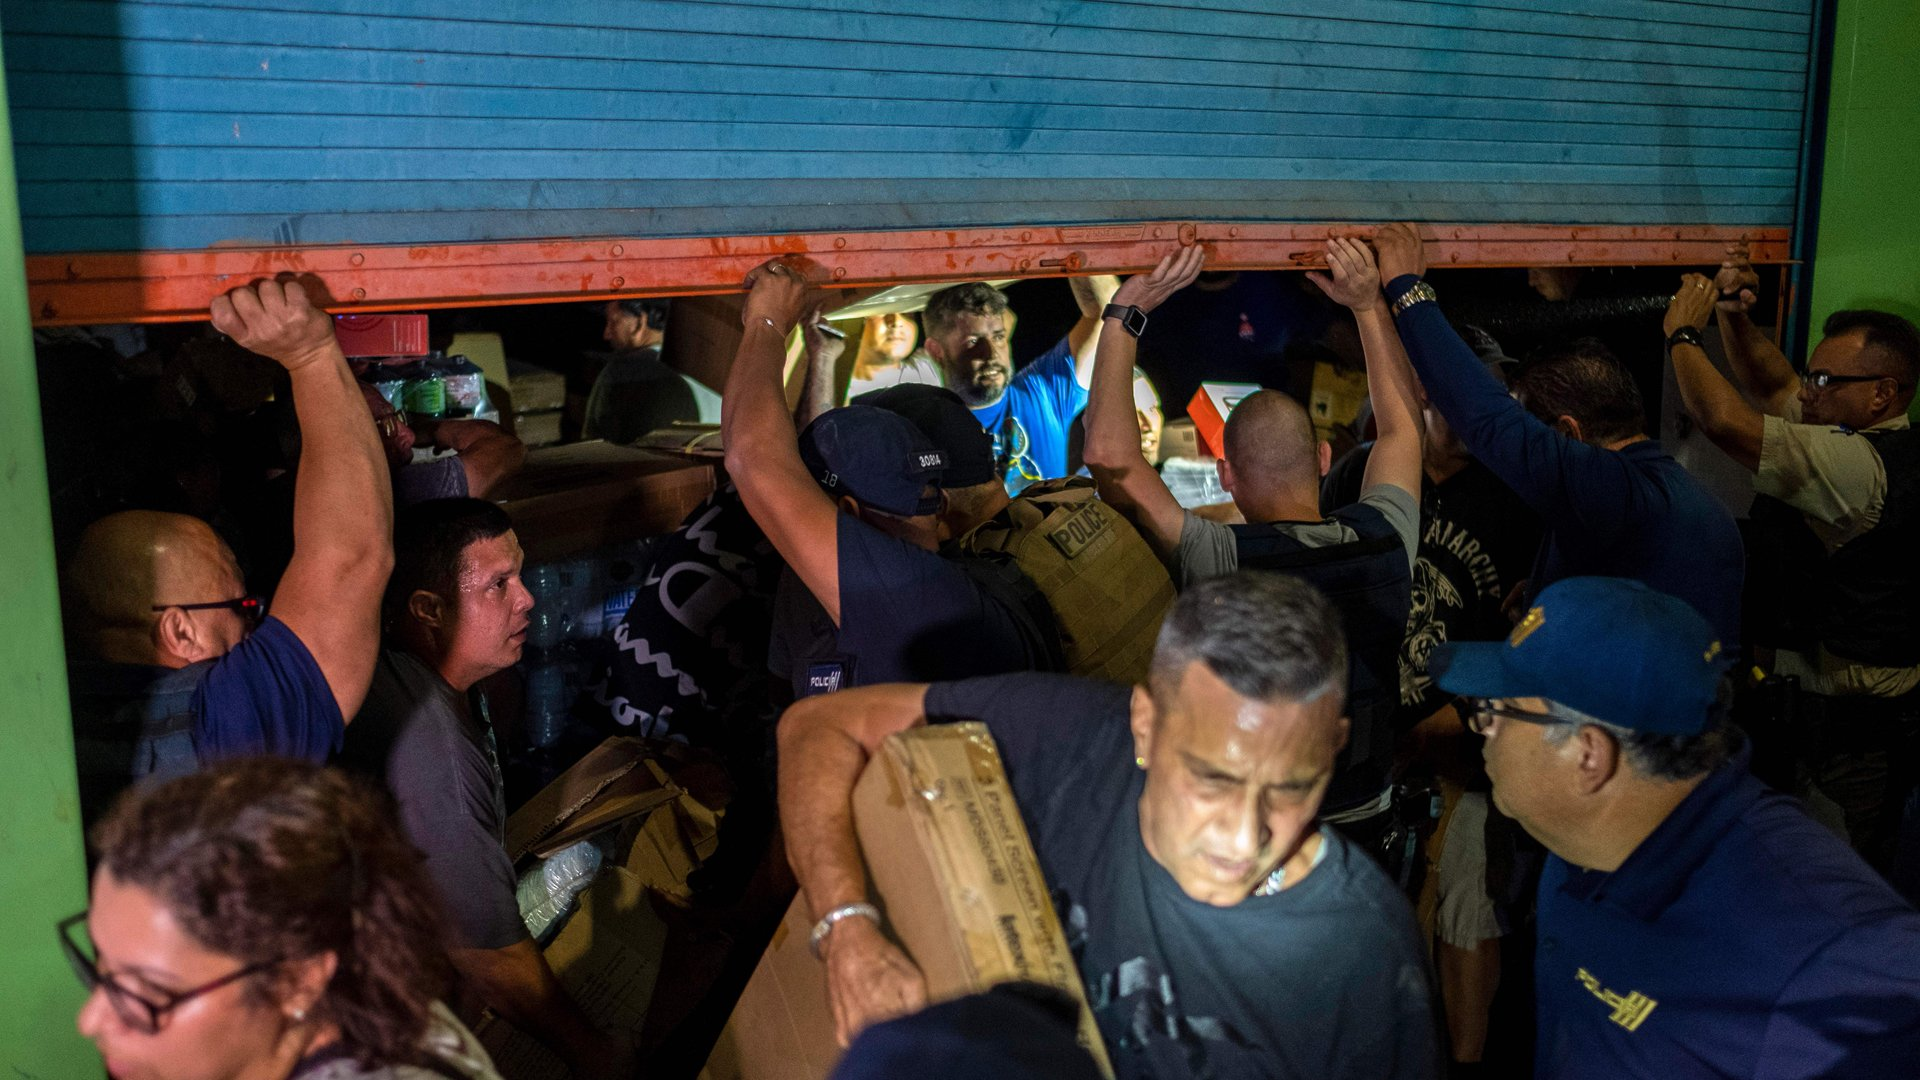 Police arrive as people break into a warehouse filled with supplies, believed to have been from when Hurricane Maria struck the island in 2017 in Ponce, Puerto Rico on January 18, 2020, after a powerful earthquake hit the island. (Credit: Ricardo Arduengo/AFP'Getty Images)